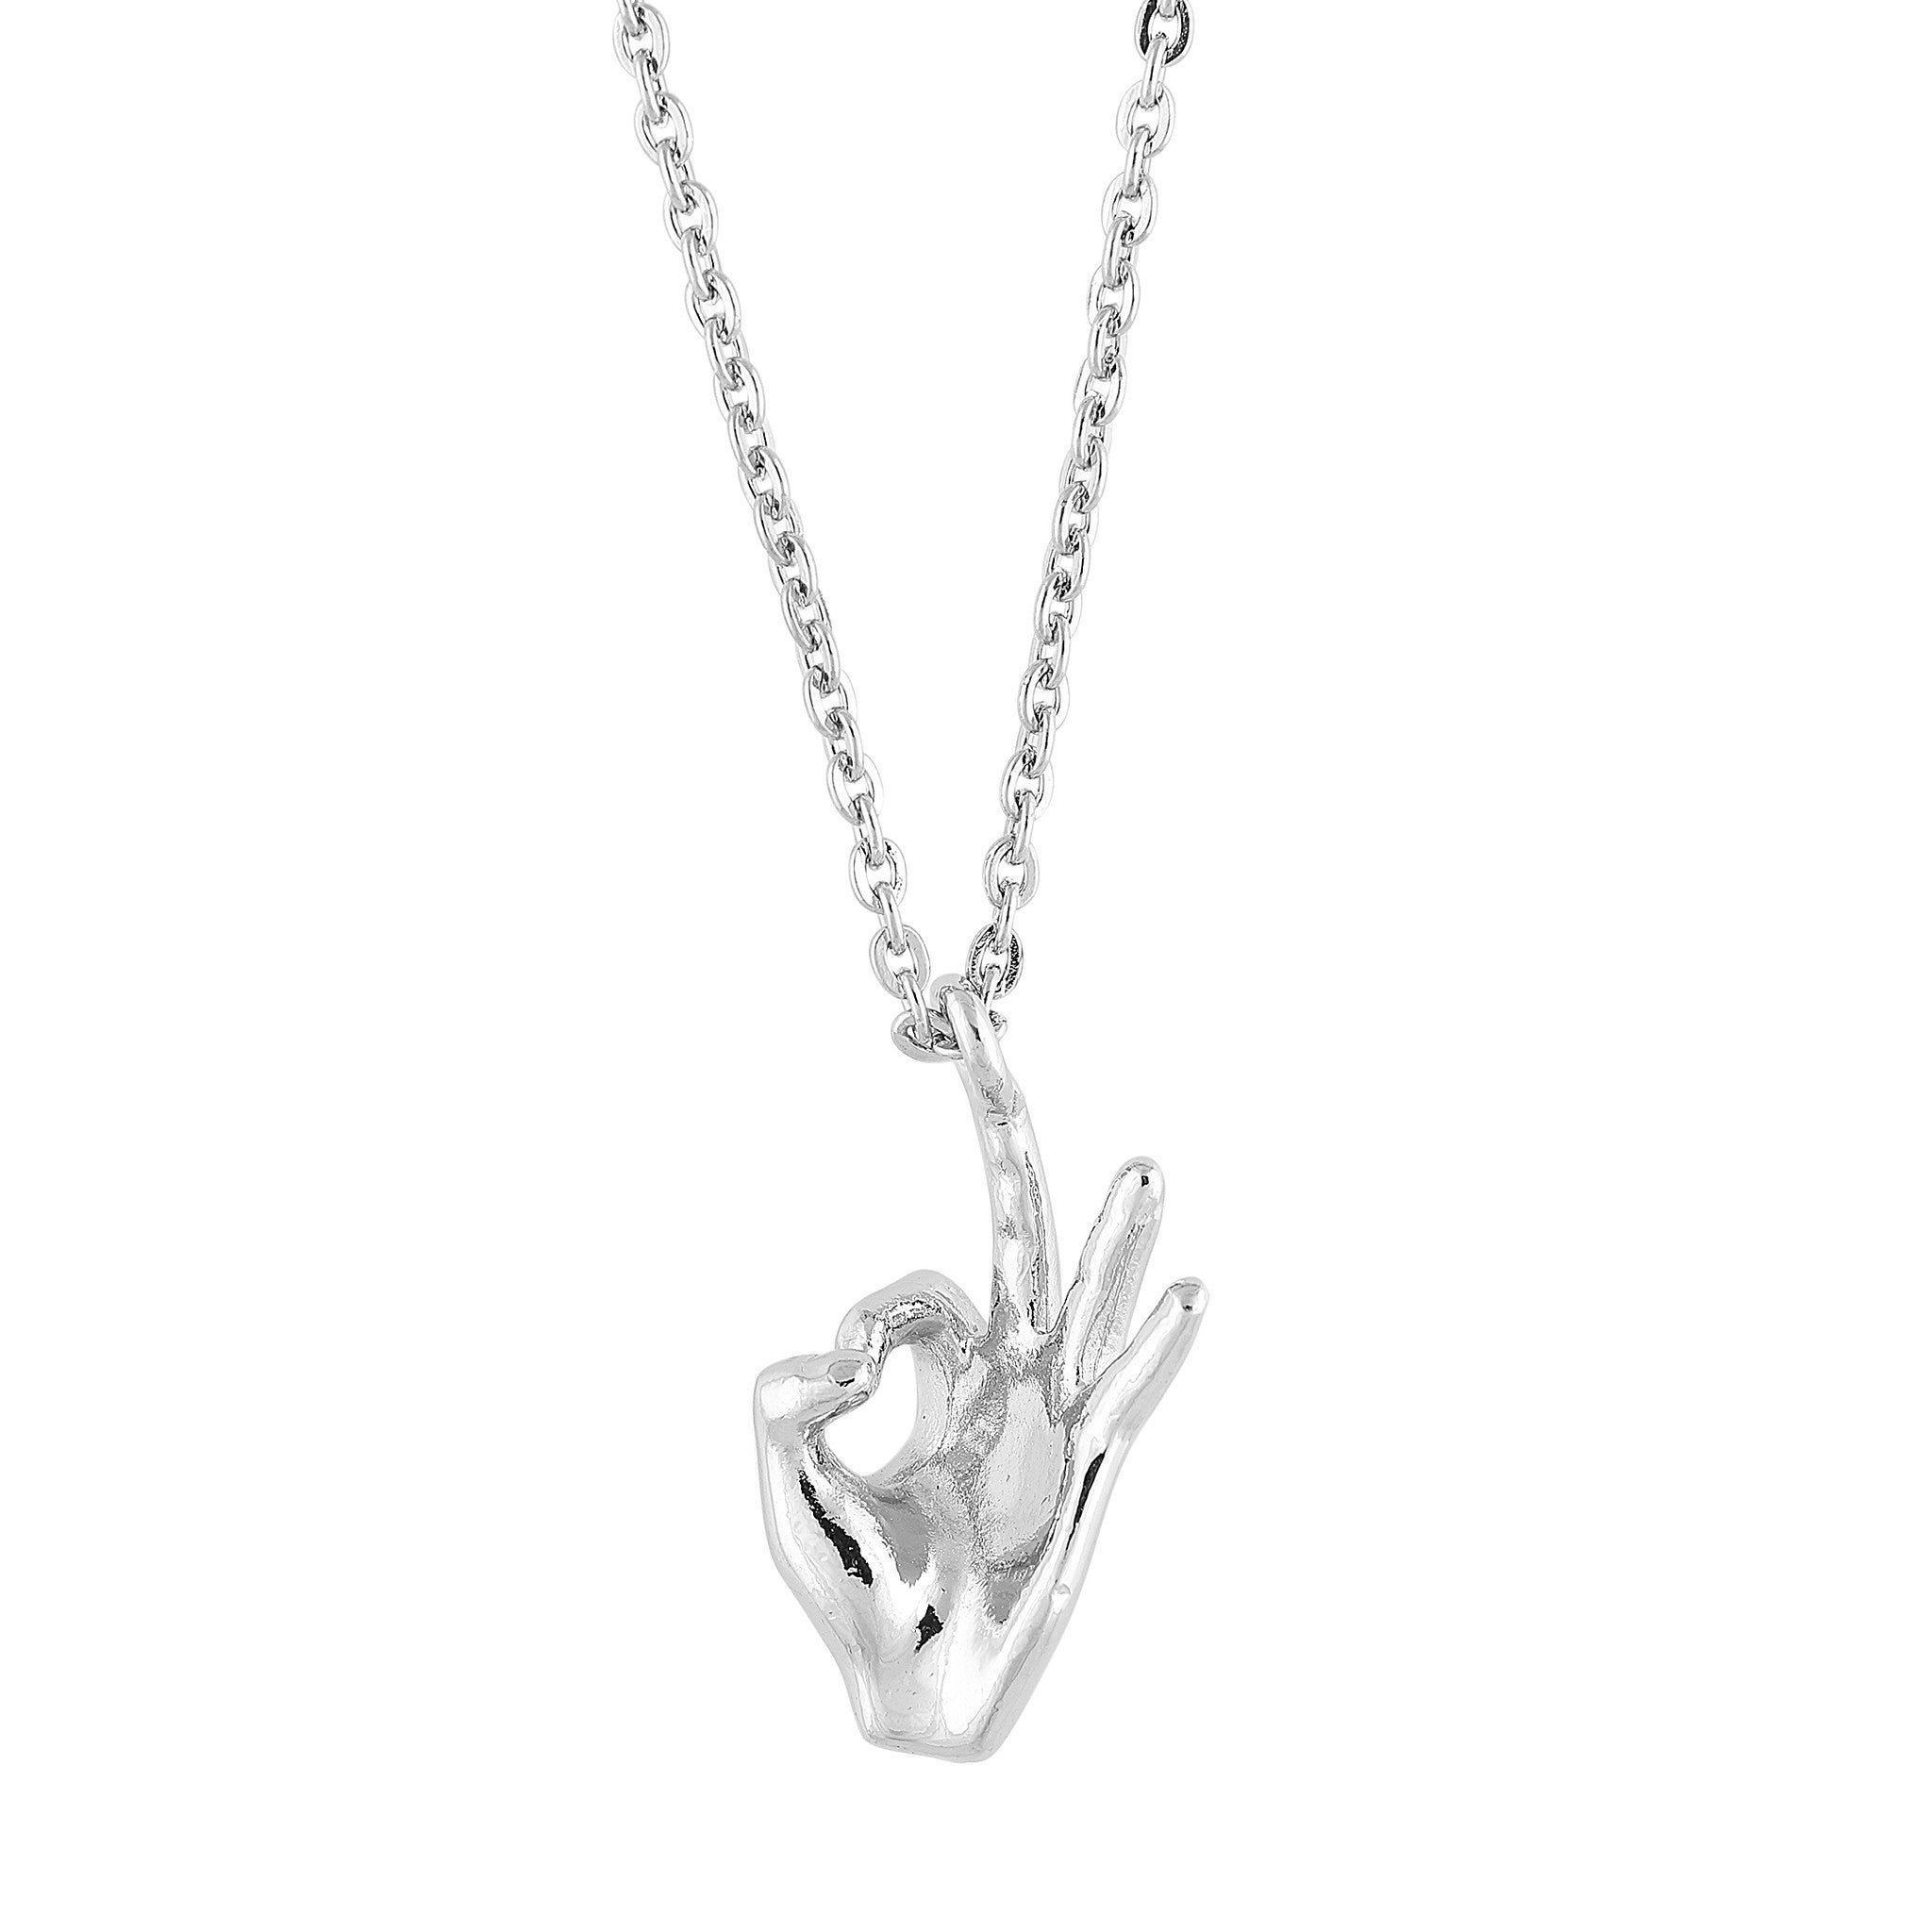 Kappa Alpha Psi Hand Sign Pendant with Necklace